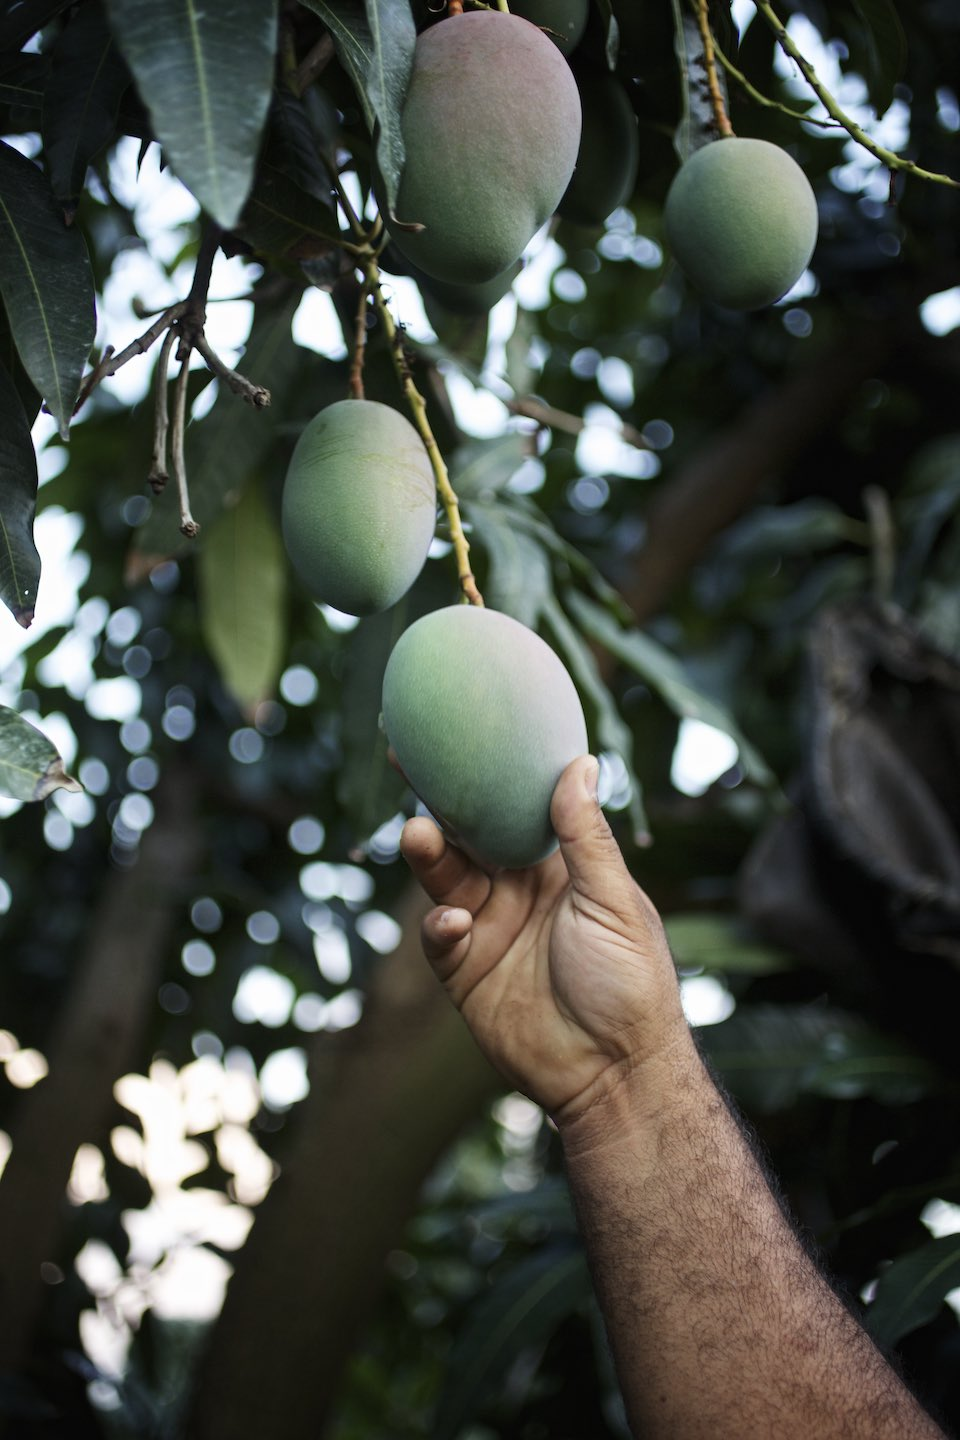 Hand reaching for a green, under-ripe mango in a tree.